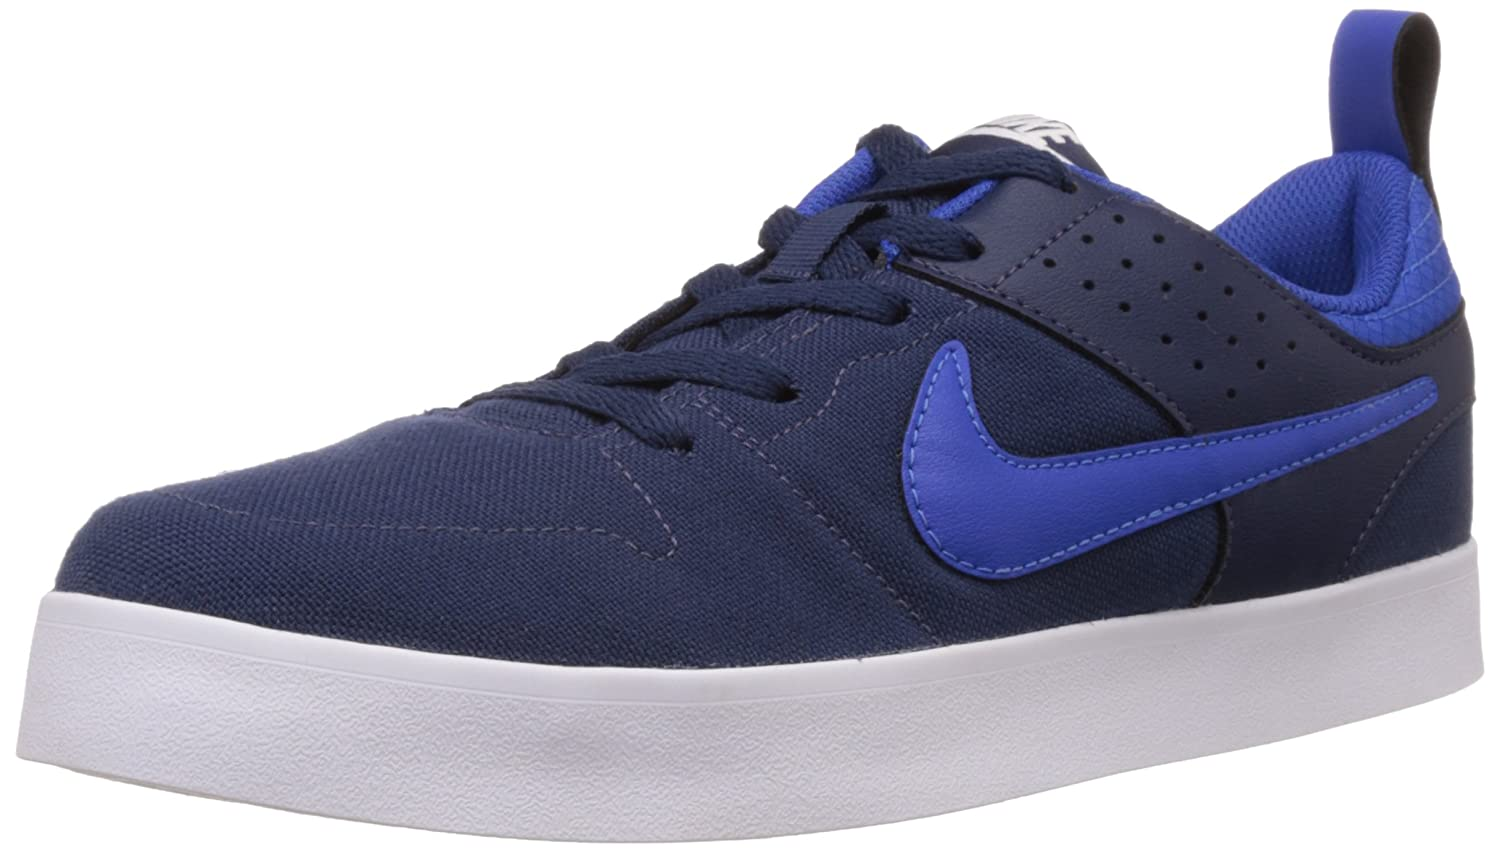 brand new 7e28b 1f95b Nike Men s Liteforce III Casual Sneakers  Buy Online at Low Prices in India  - Amazon.in